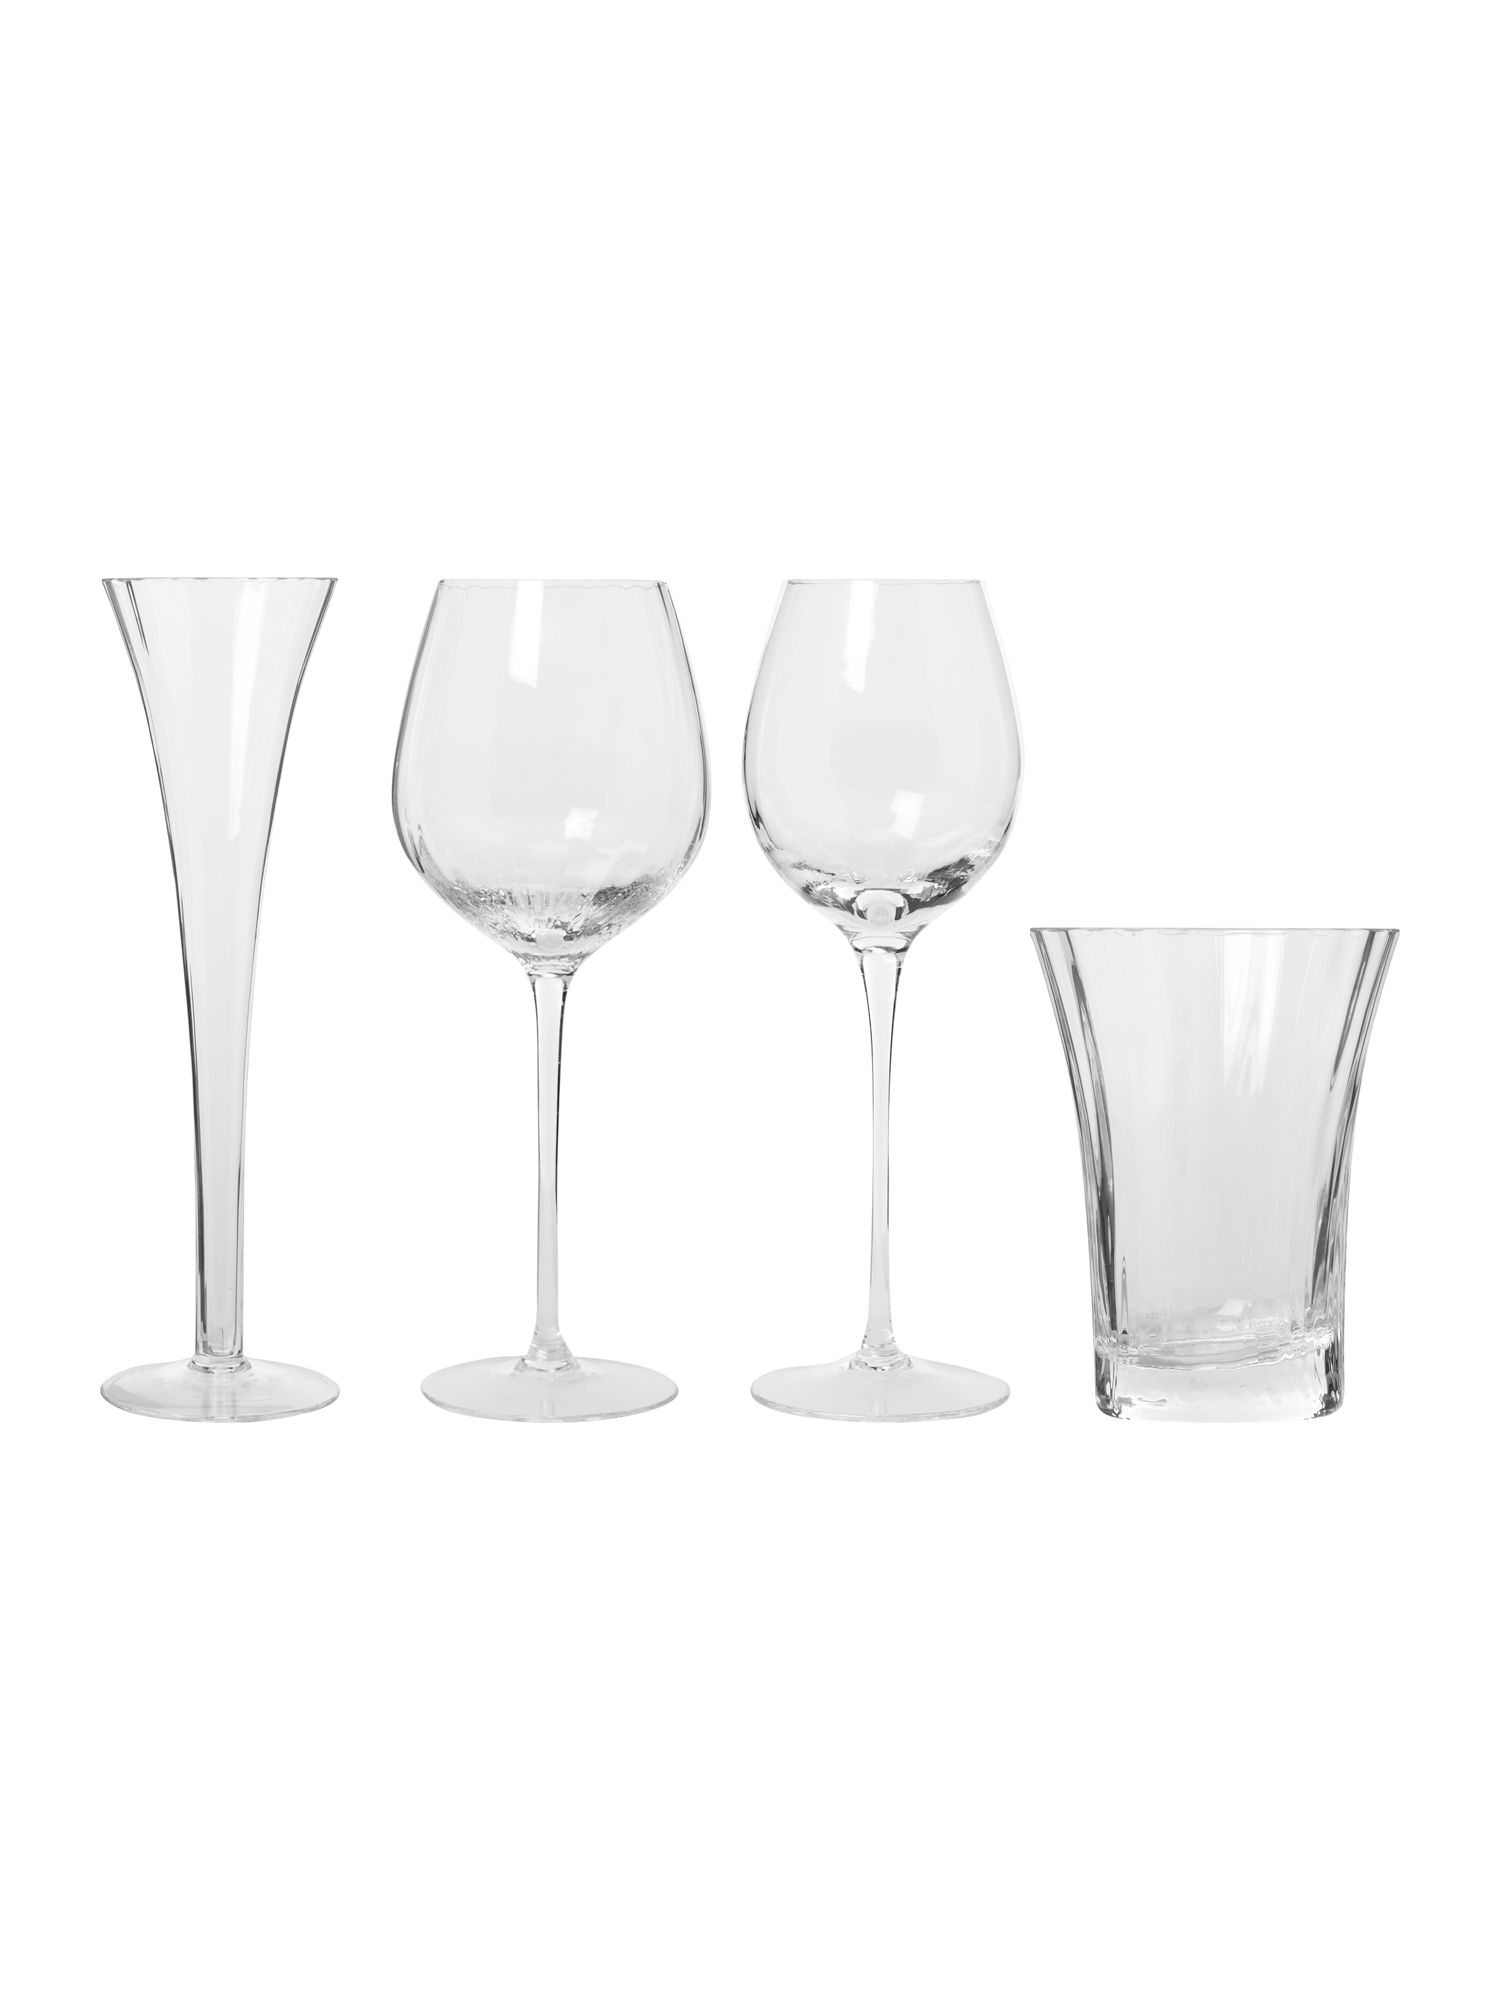 Aurelia glassware collection